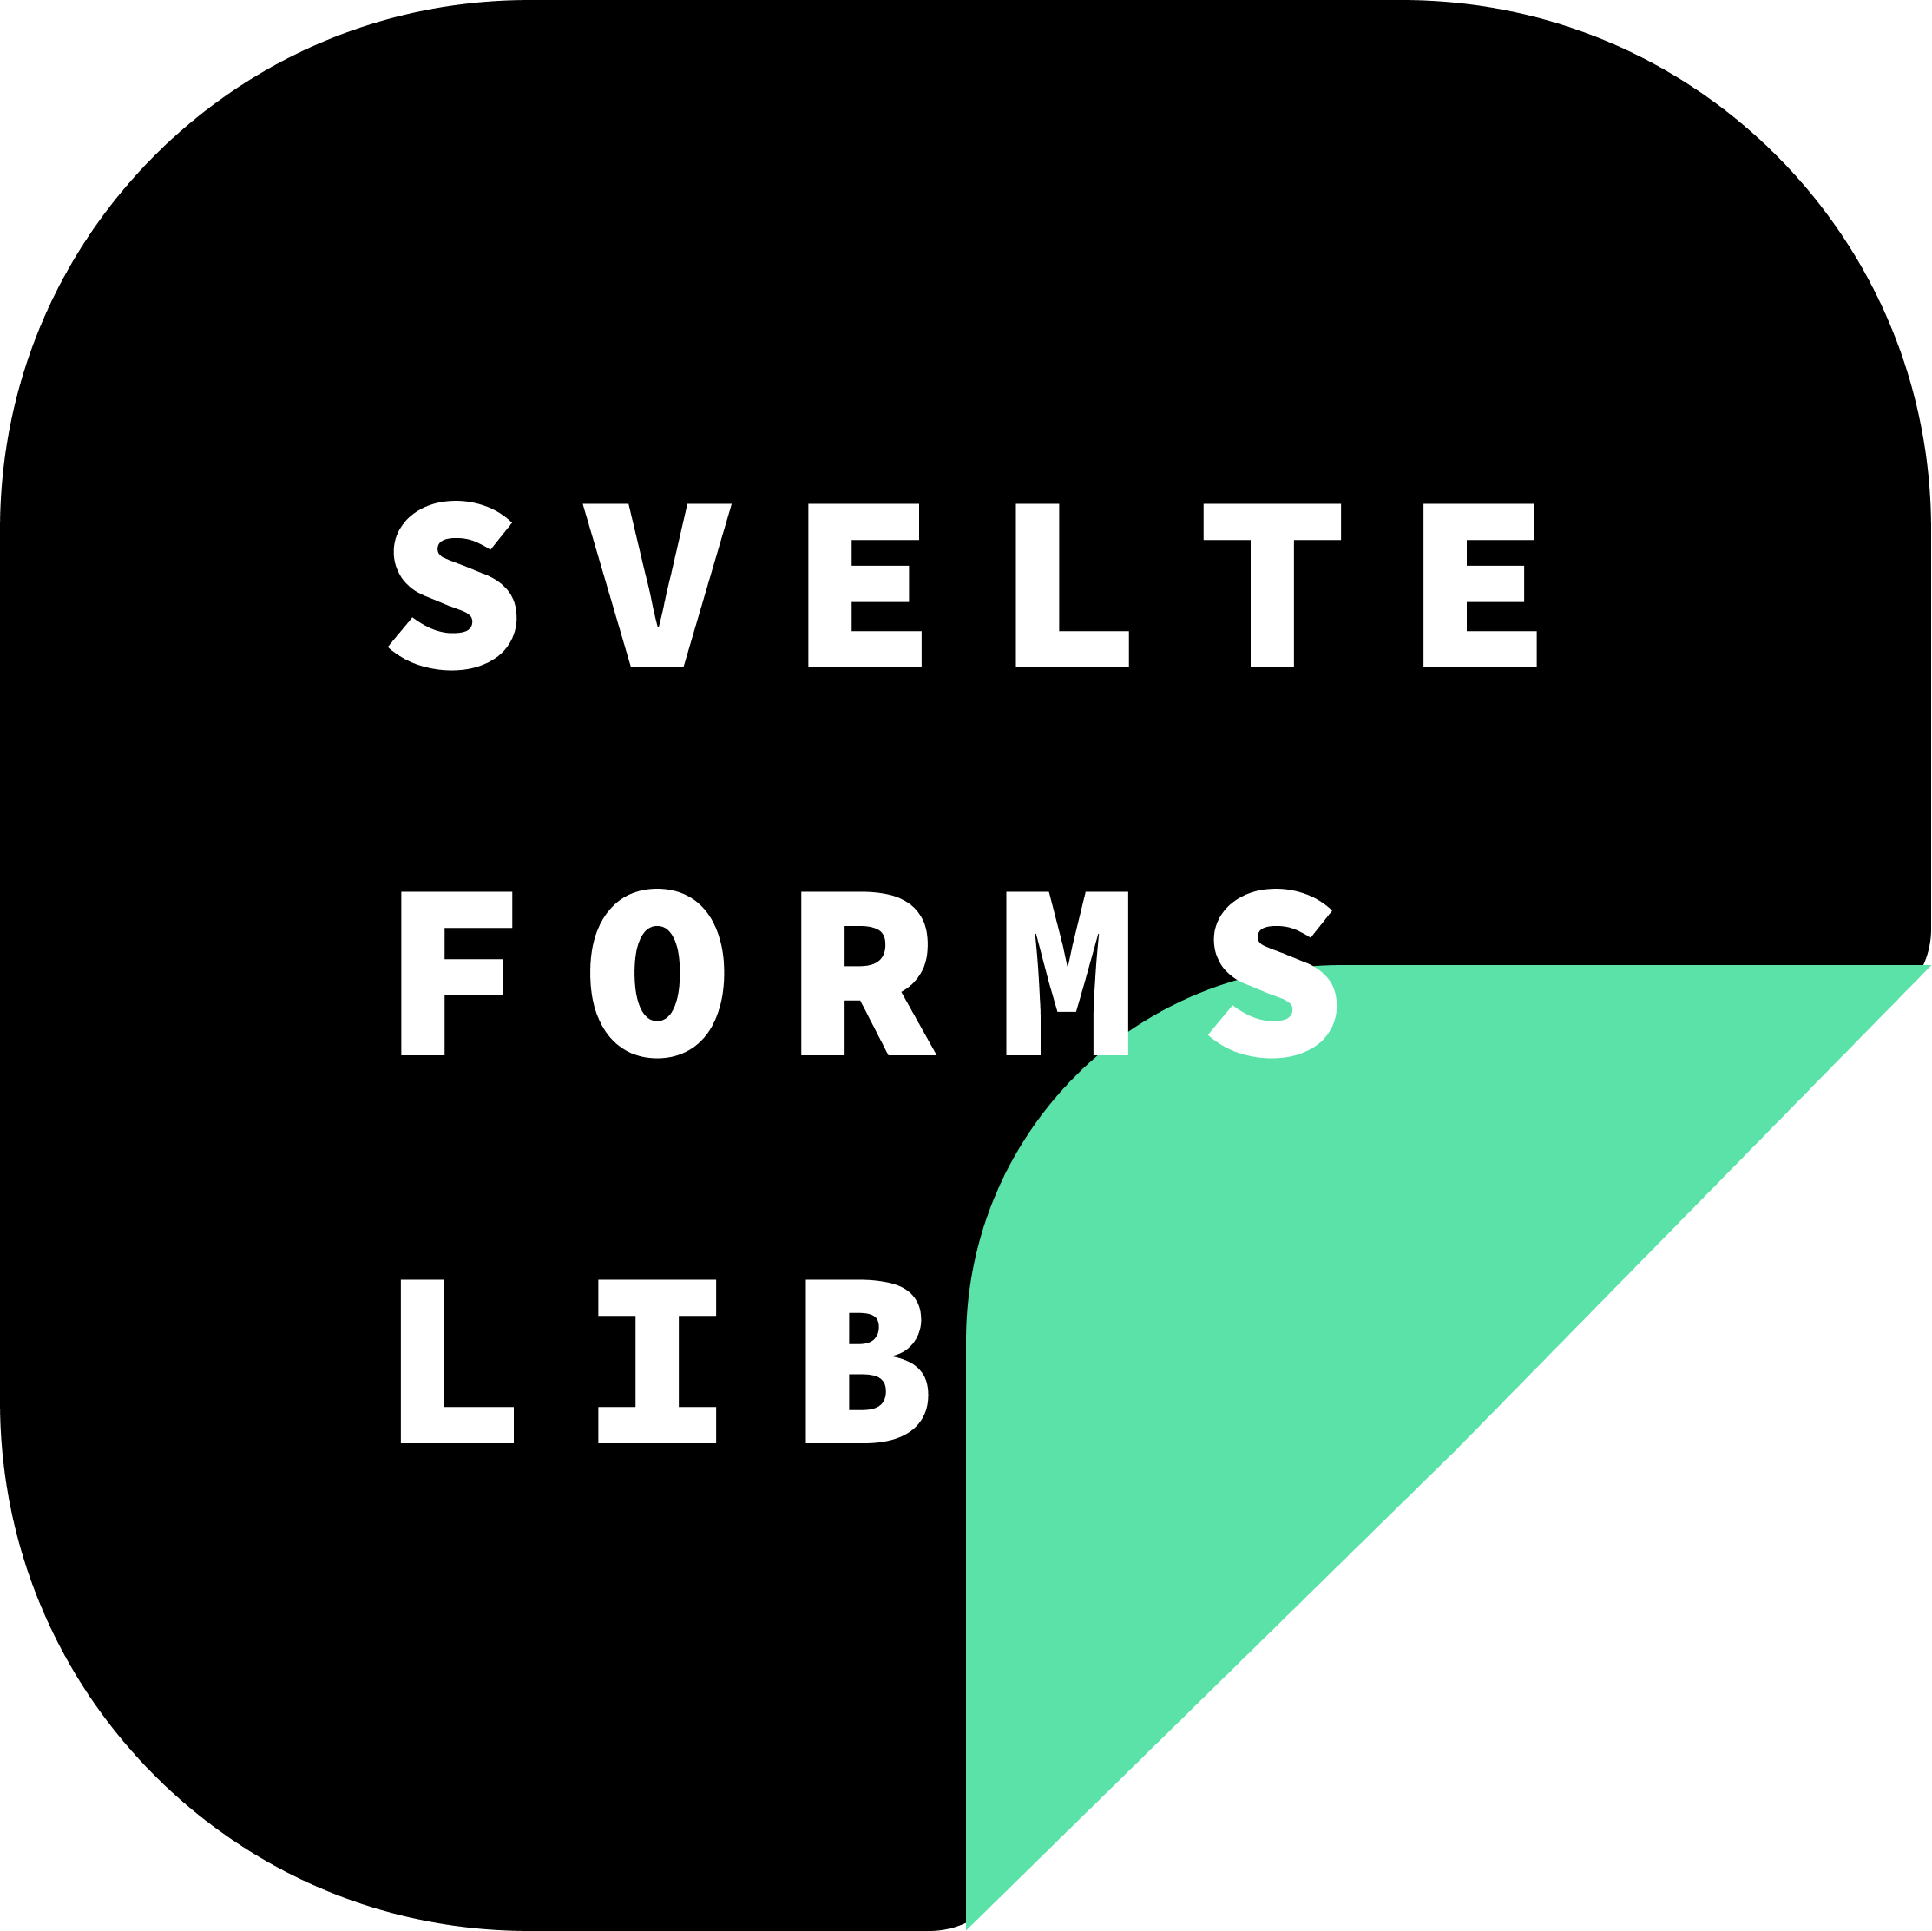 logo of svelte-forms-lib